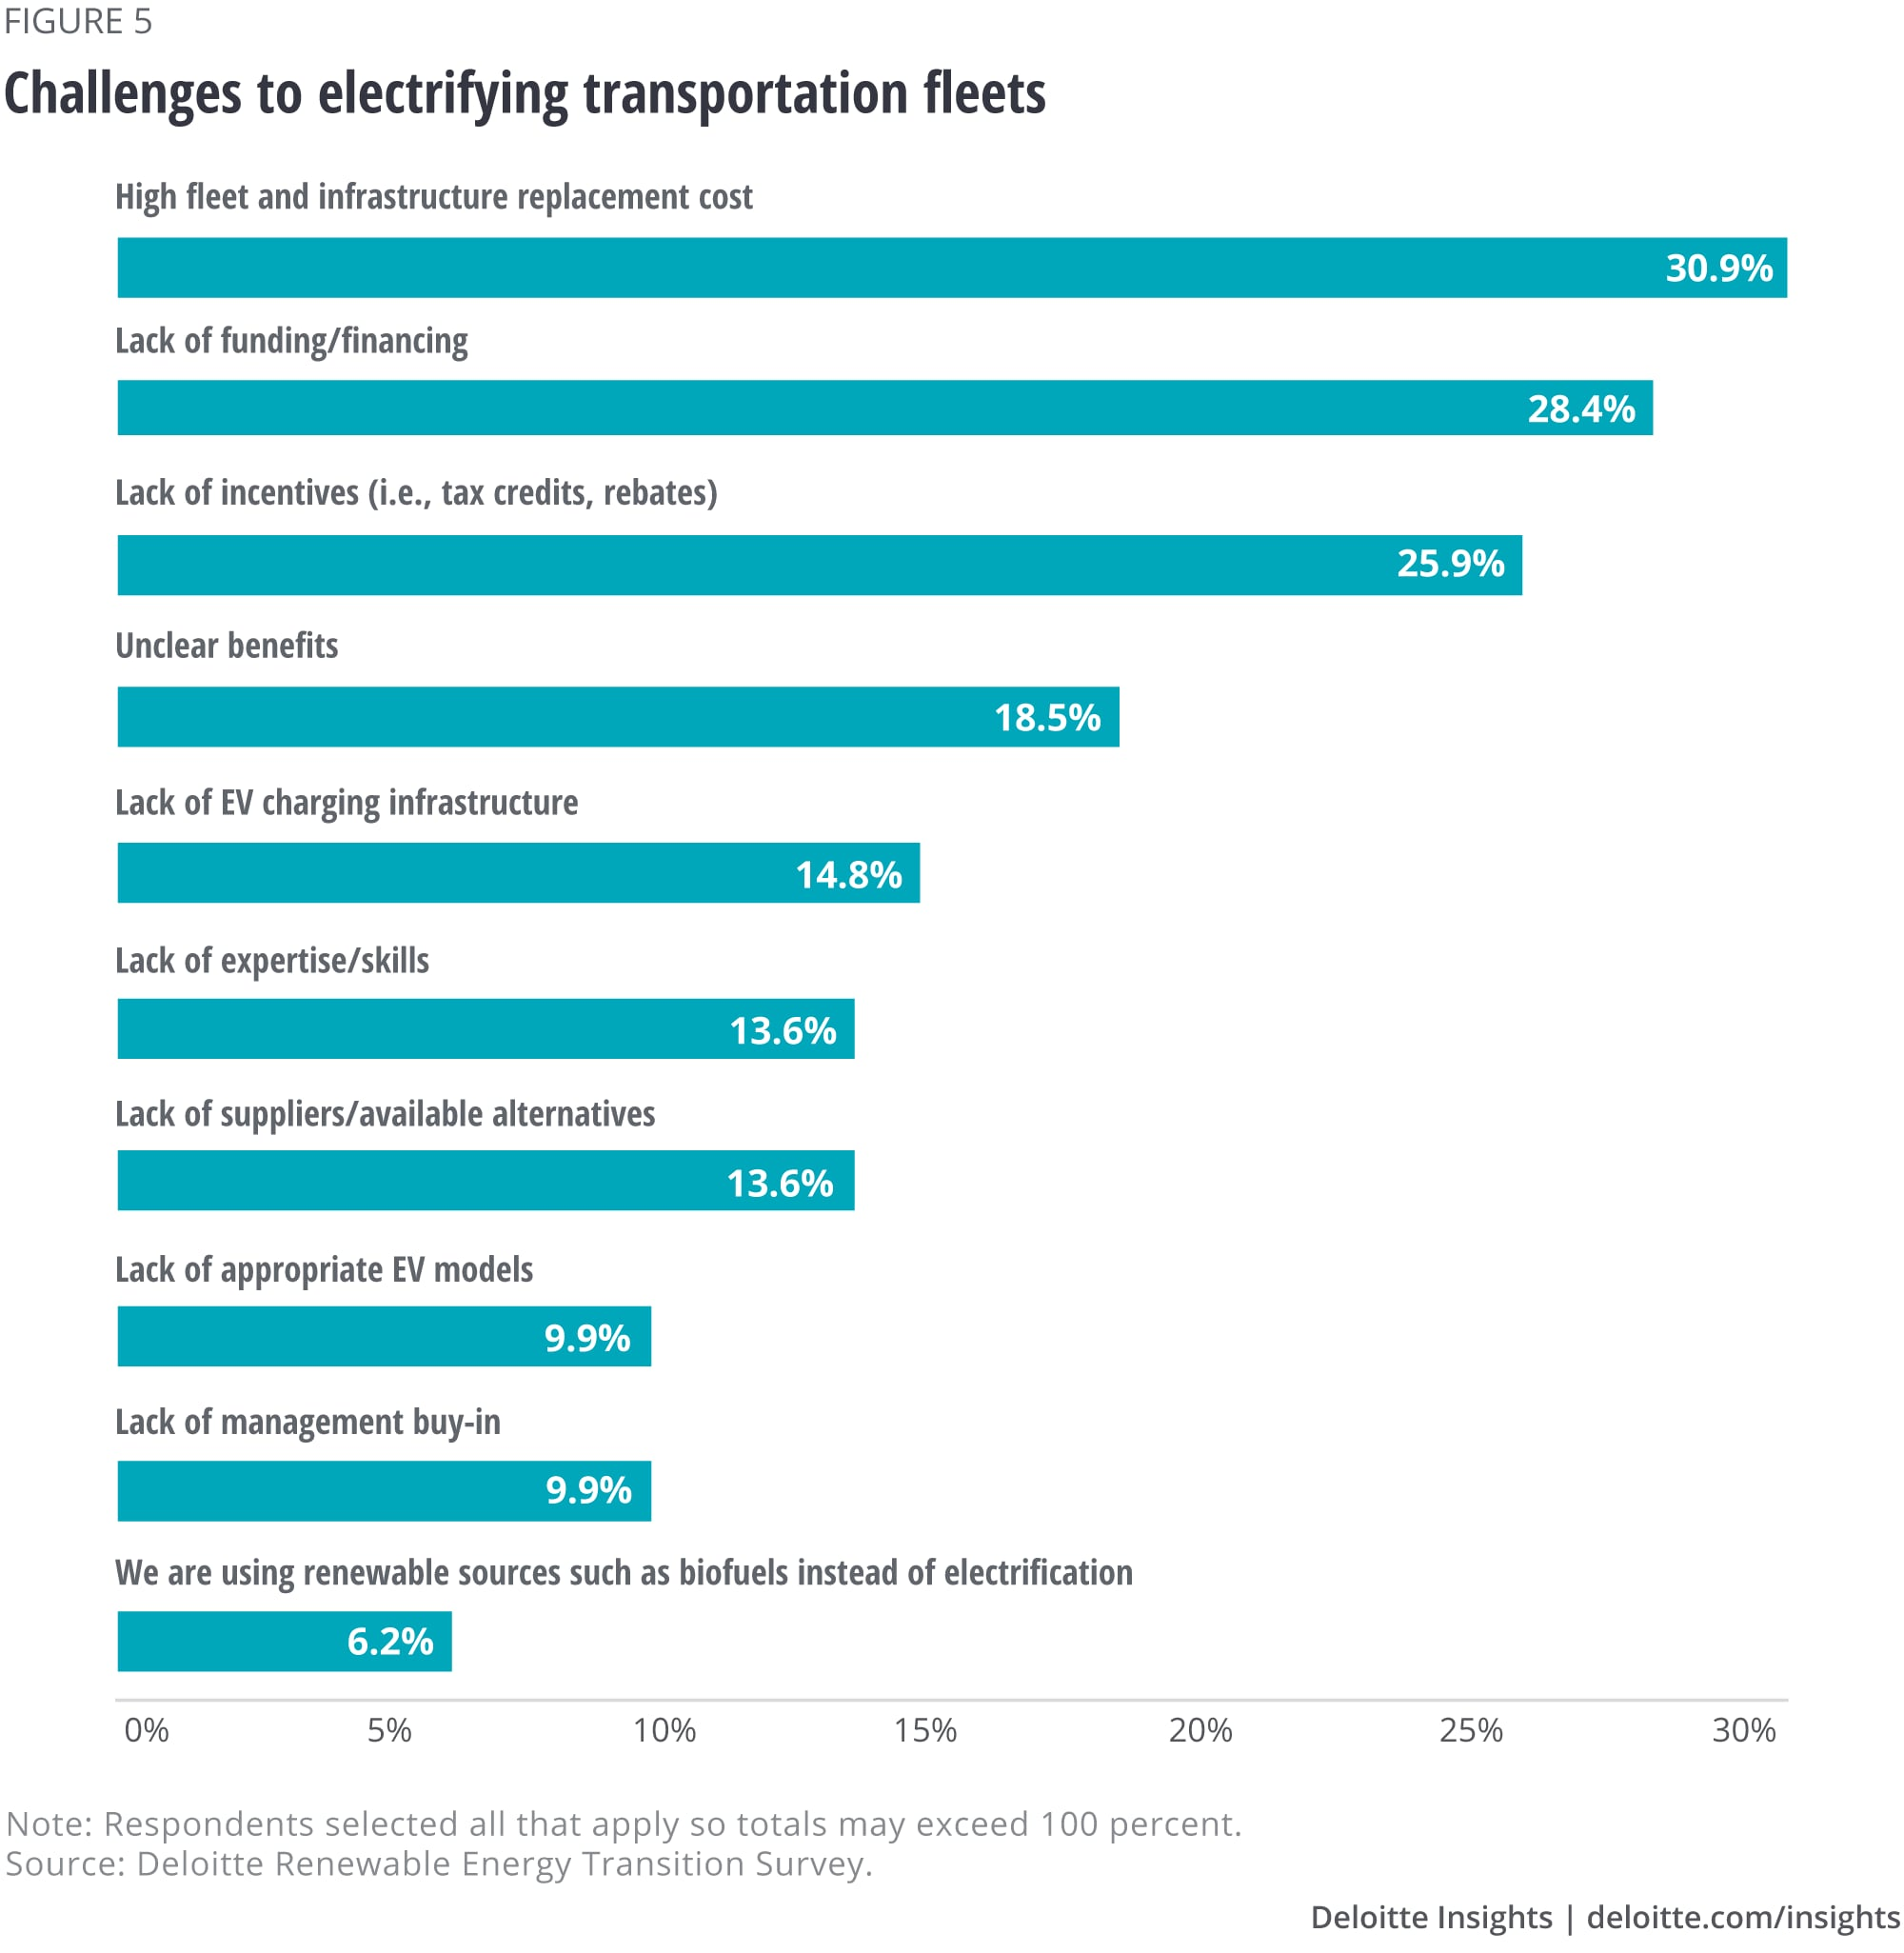 Challenges to electrifying transportation fleets